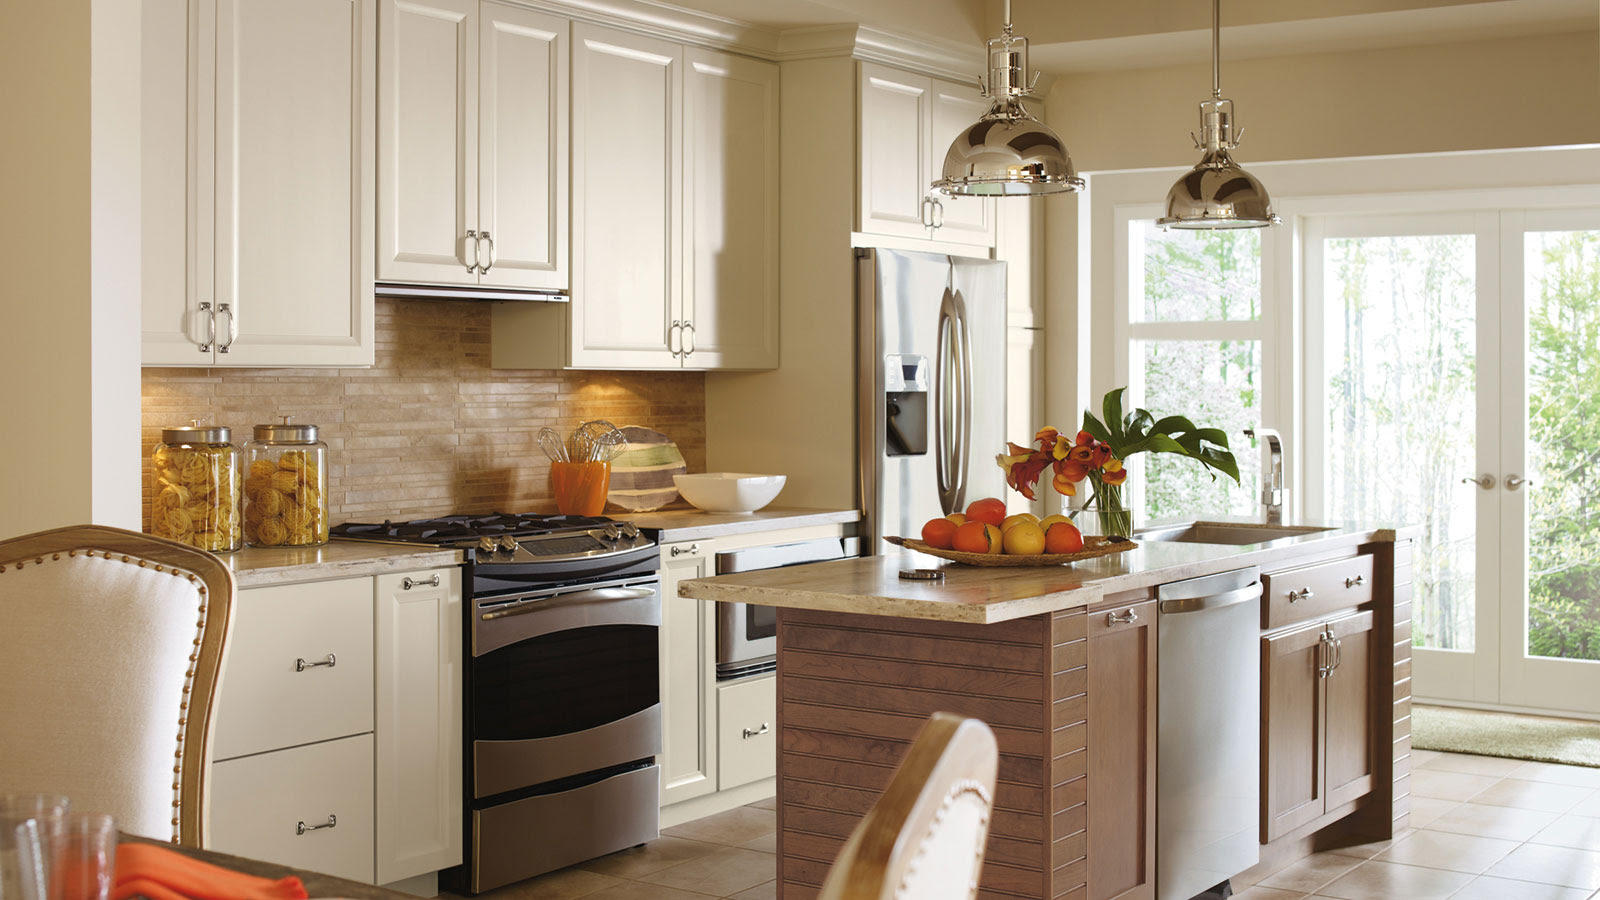 Painted Maple Cabinets in a Casual Kitchen - Omega